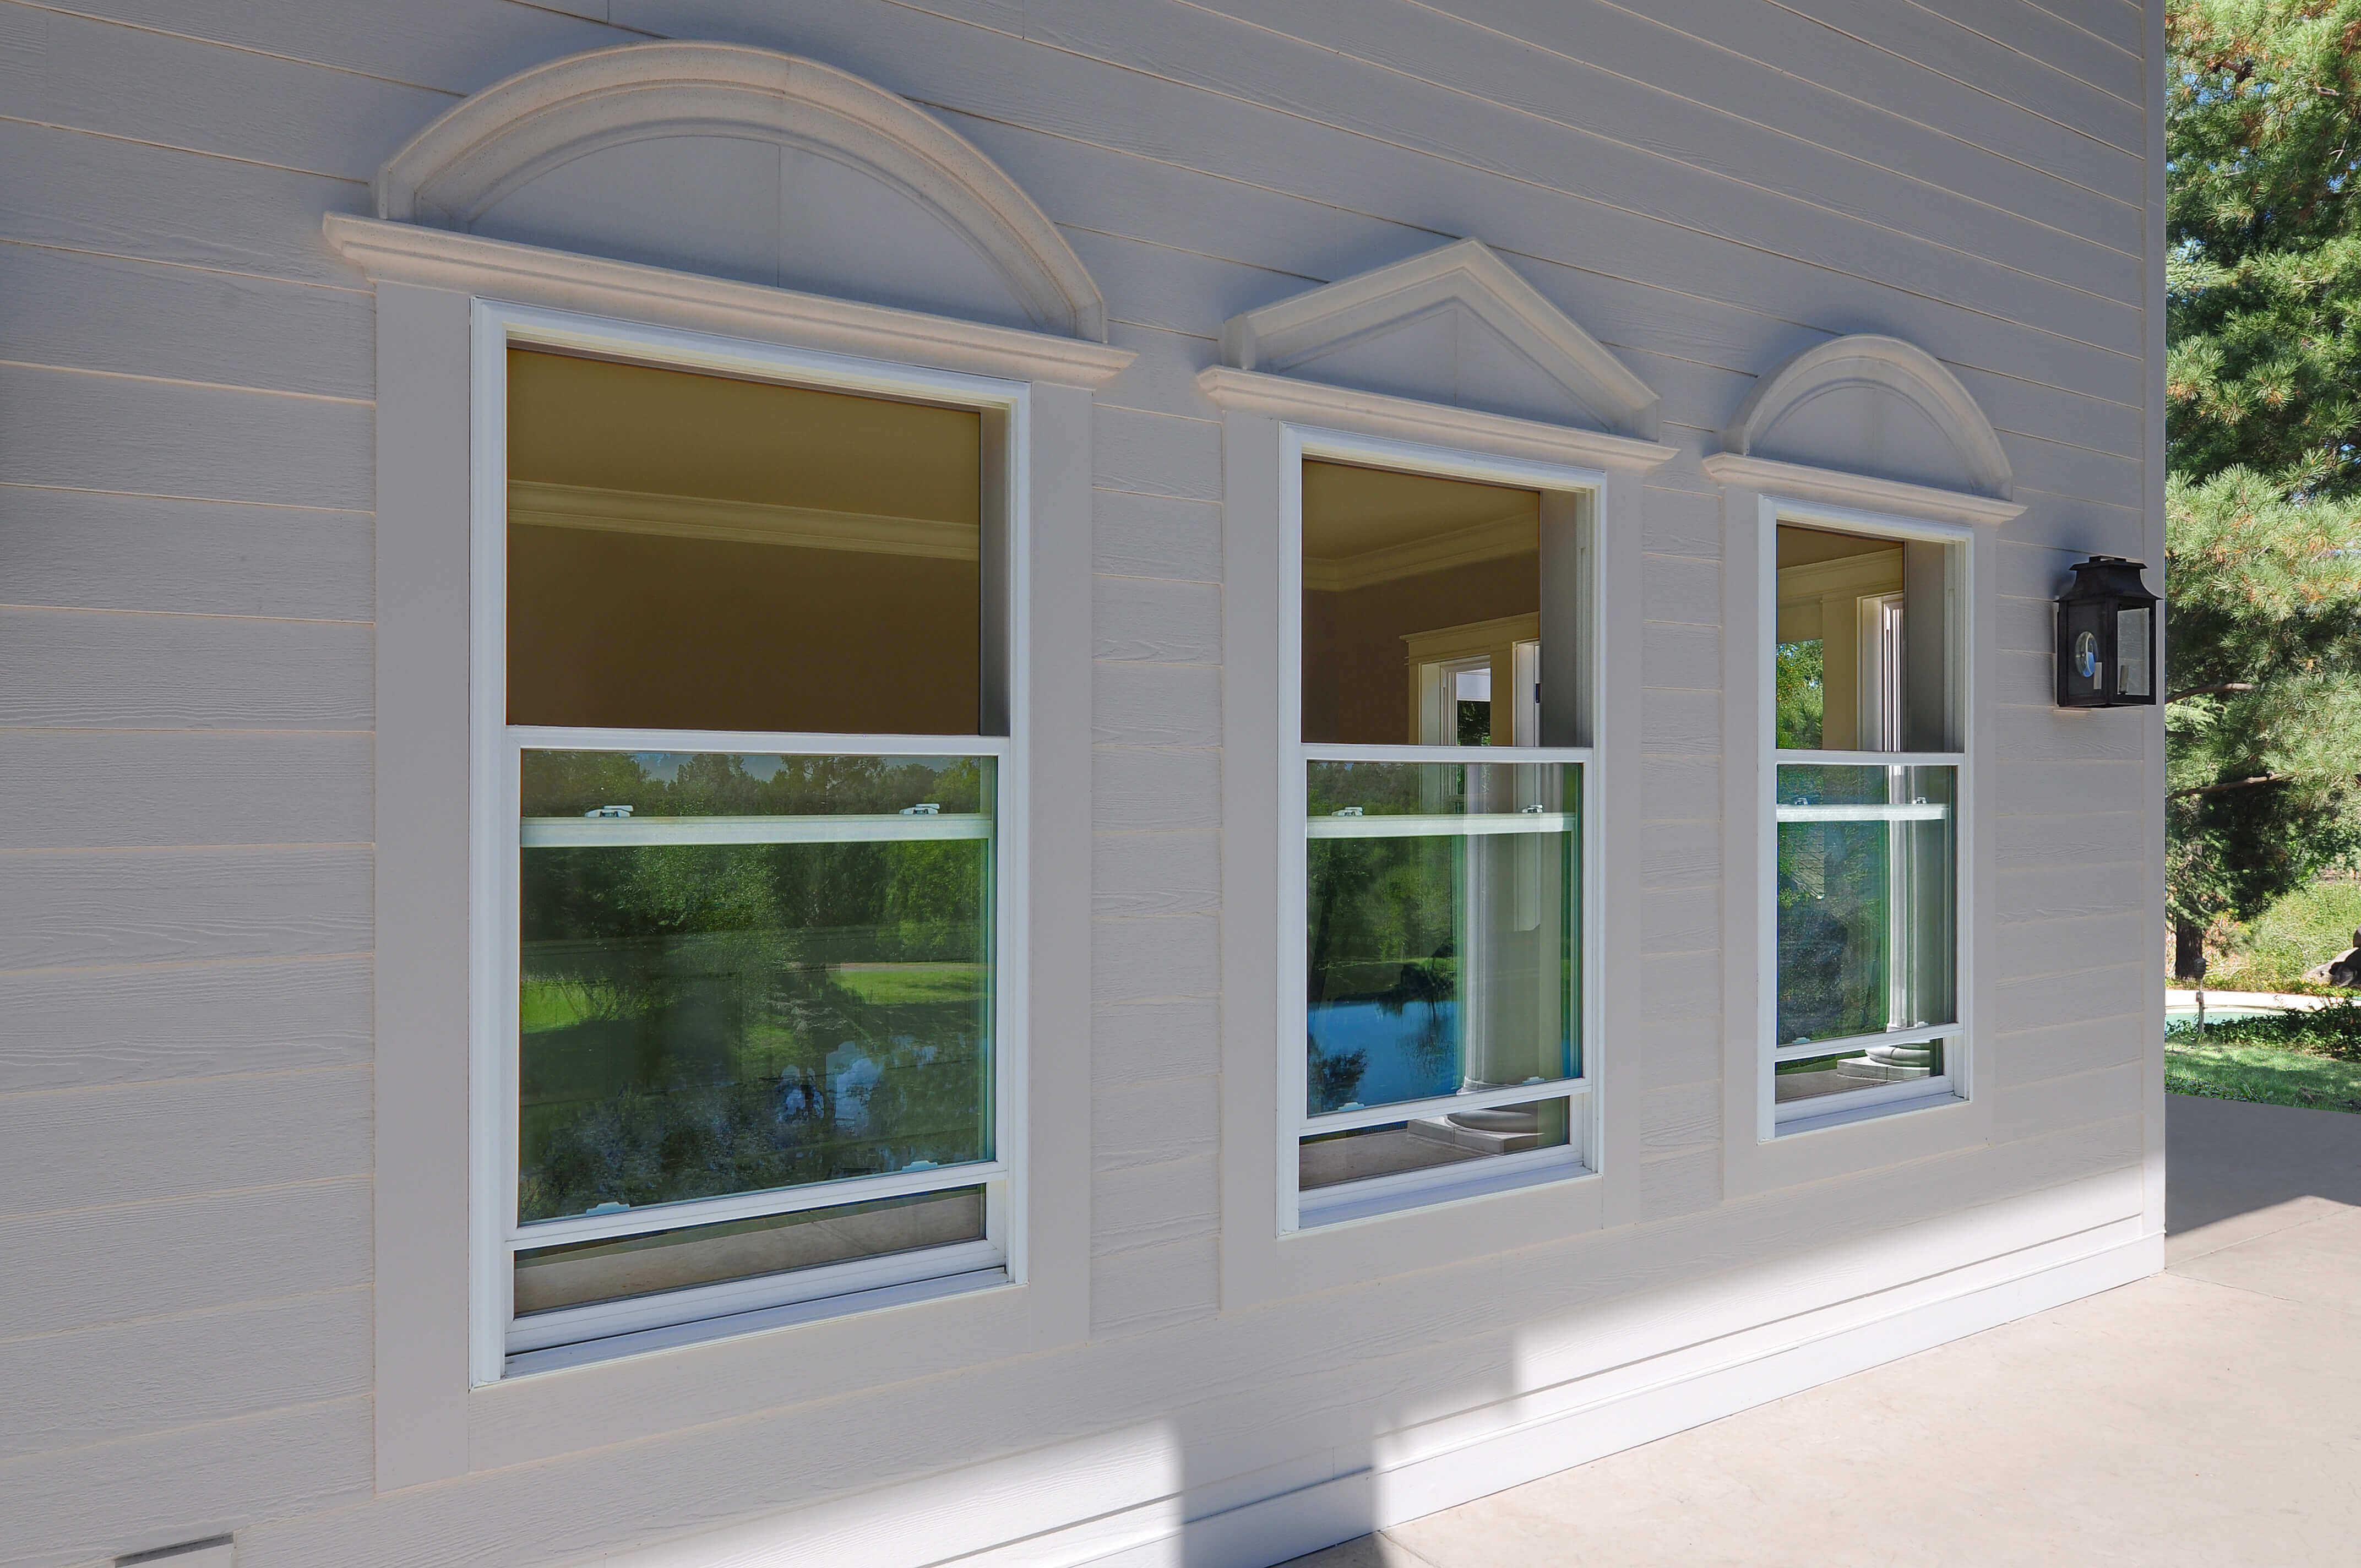 replacement windows in Redmond, Washington